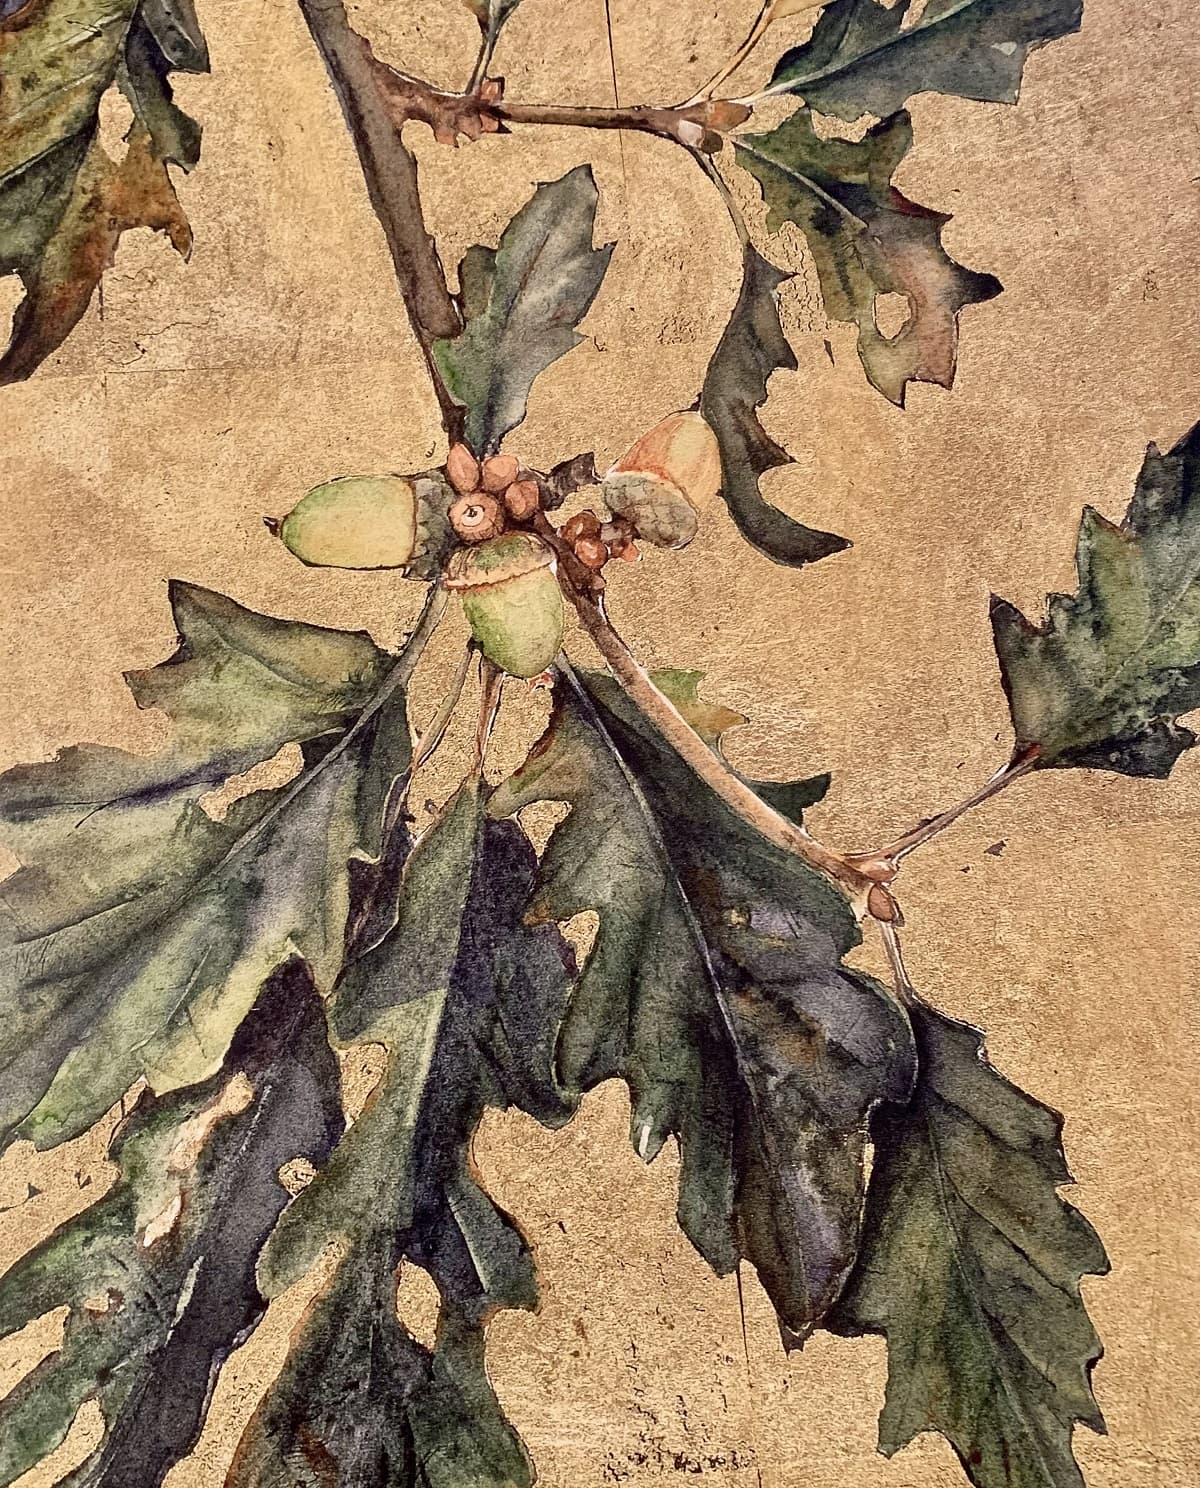 """Acorns. Illustration by Jackie Morris in """"The Wild Places"""" in the Examined Life Library."""